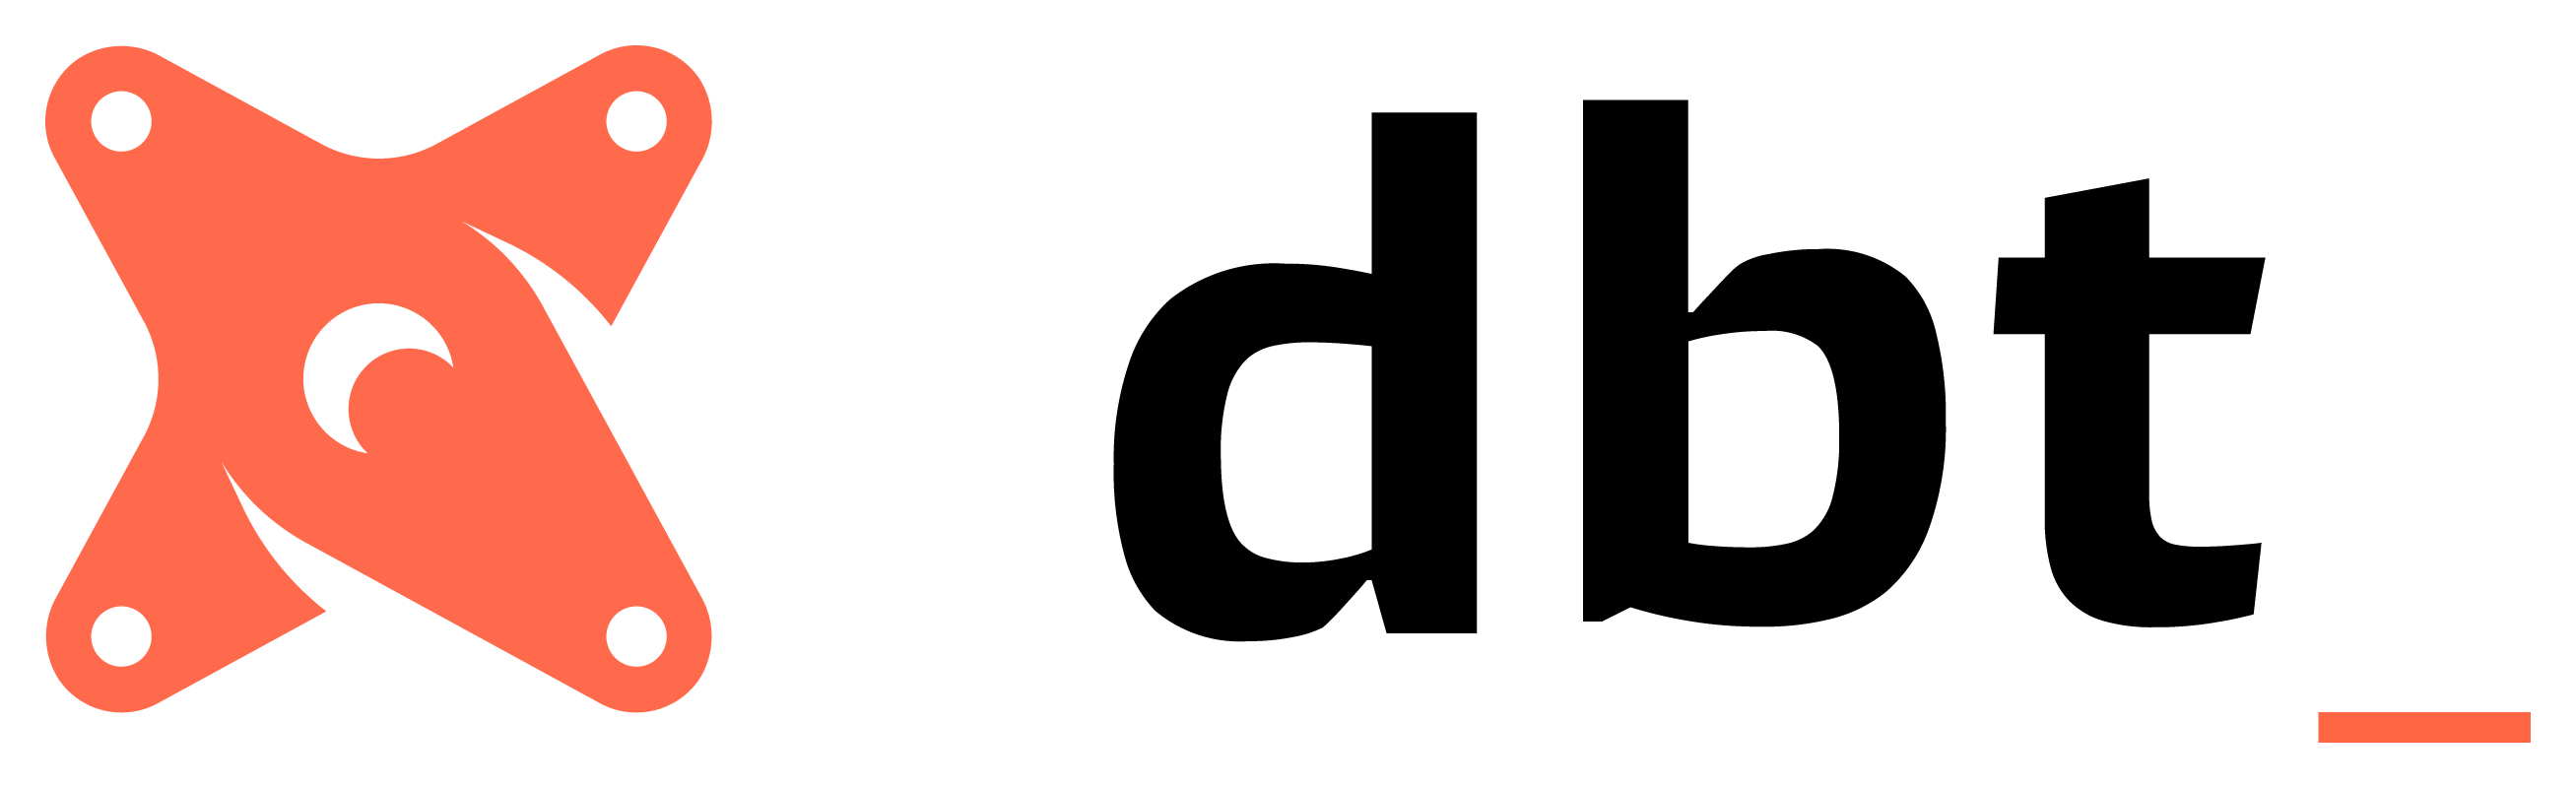 The logo for dbt